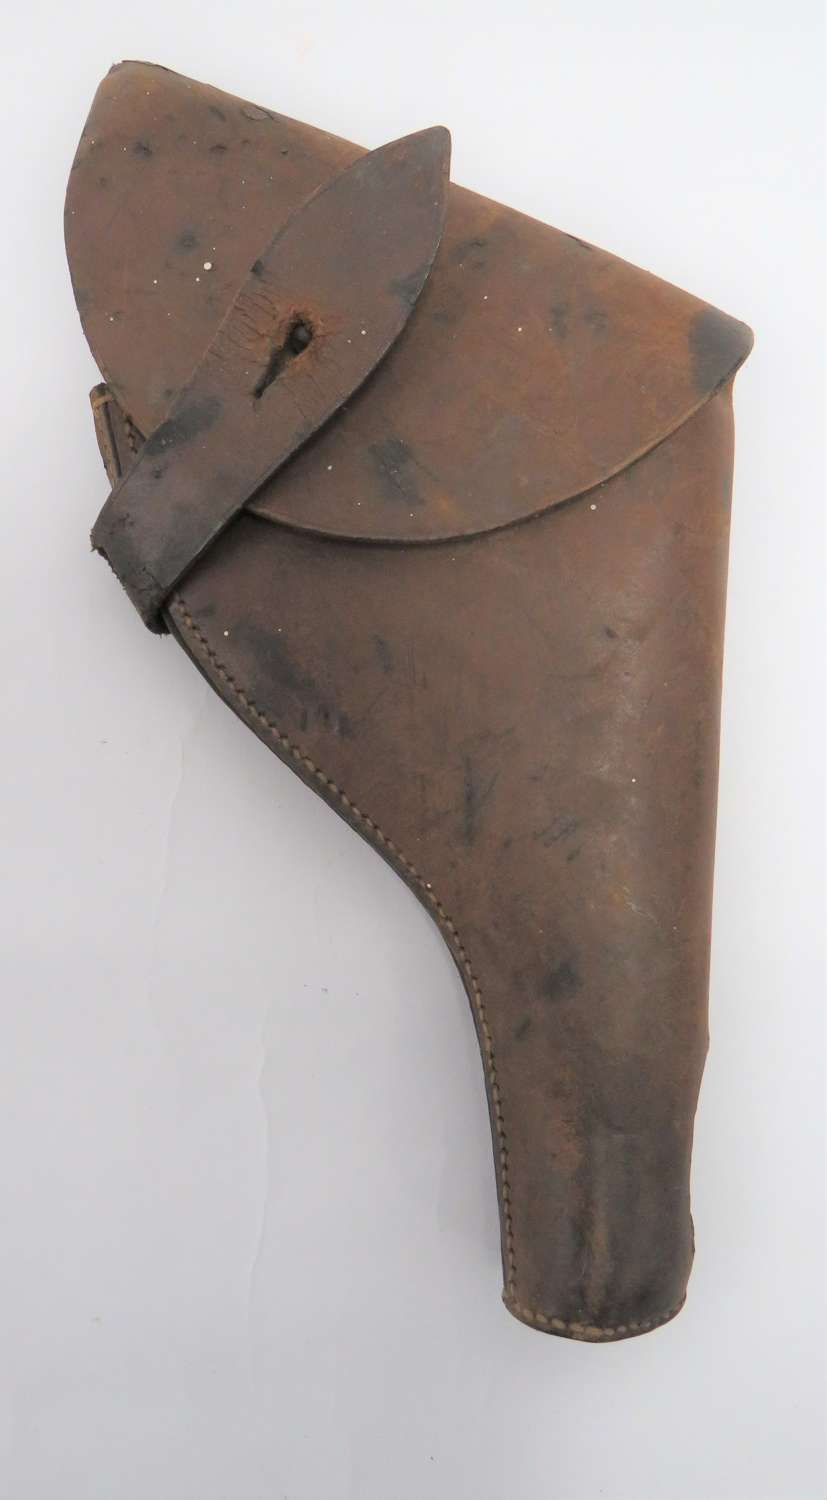 WW2 Officers Leather Webley / Enfield  Revolver Holster